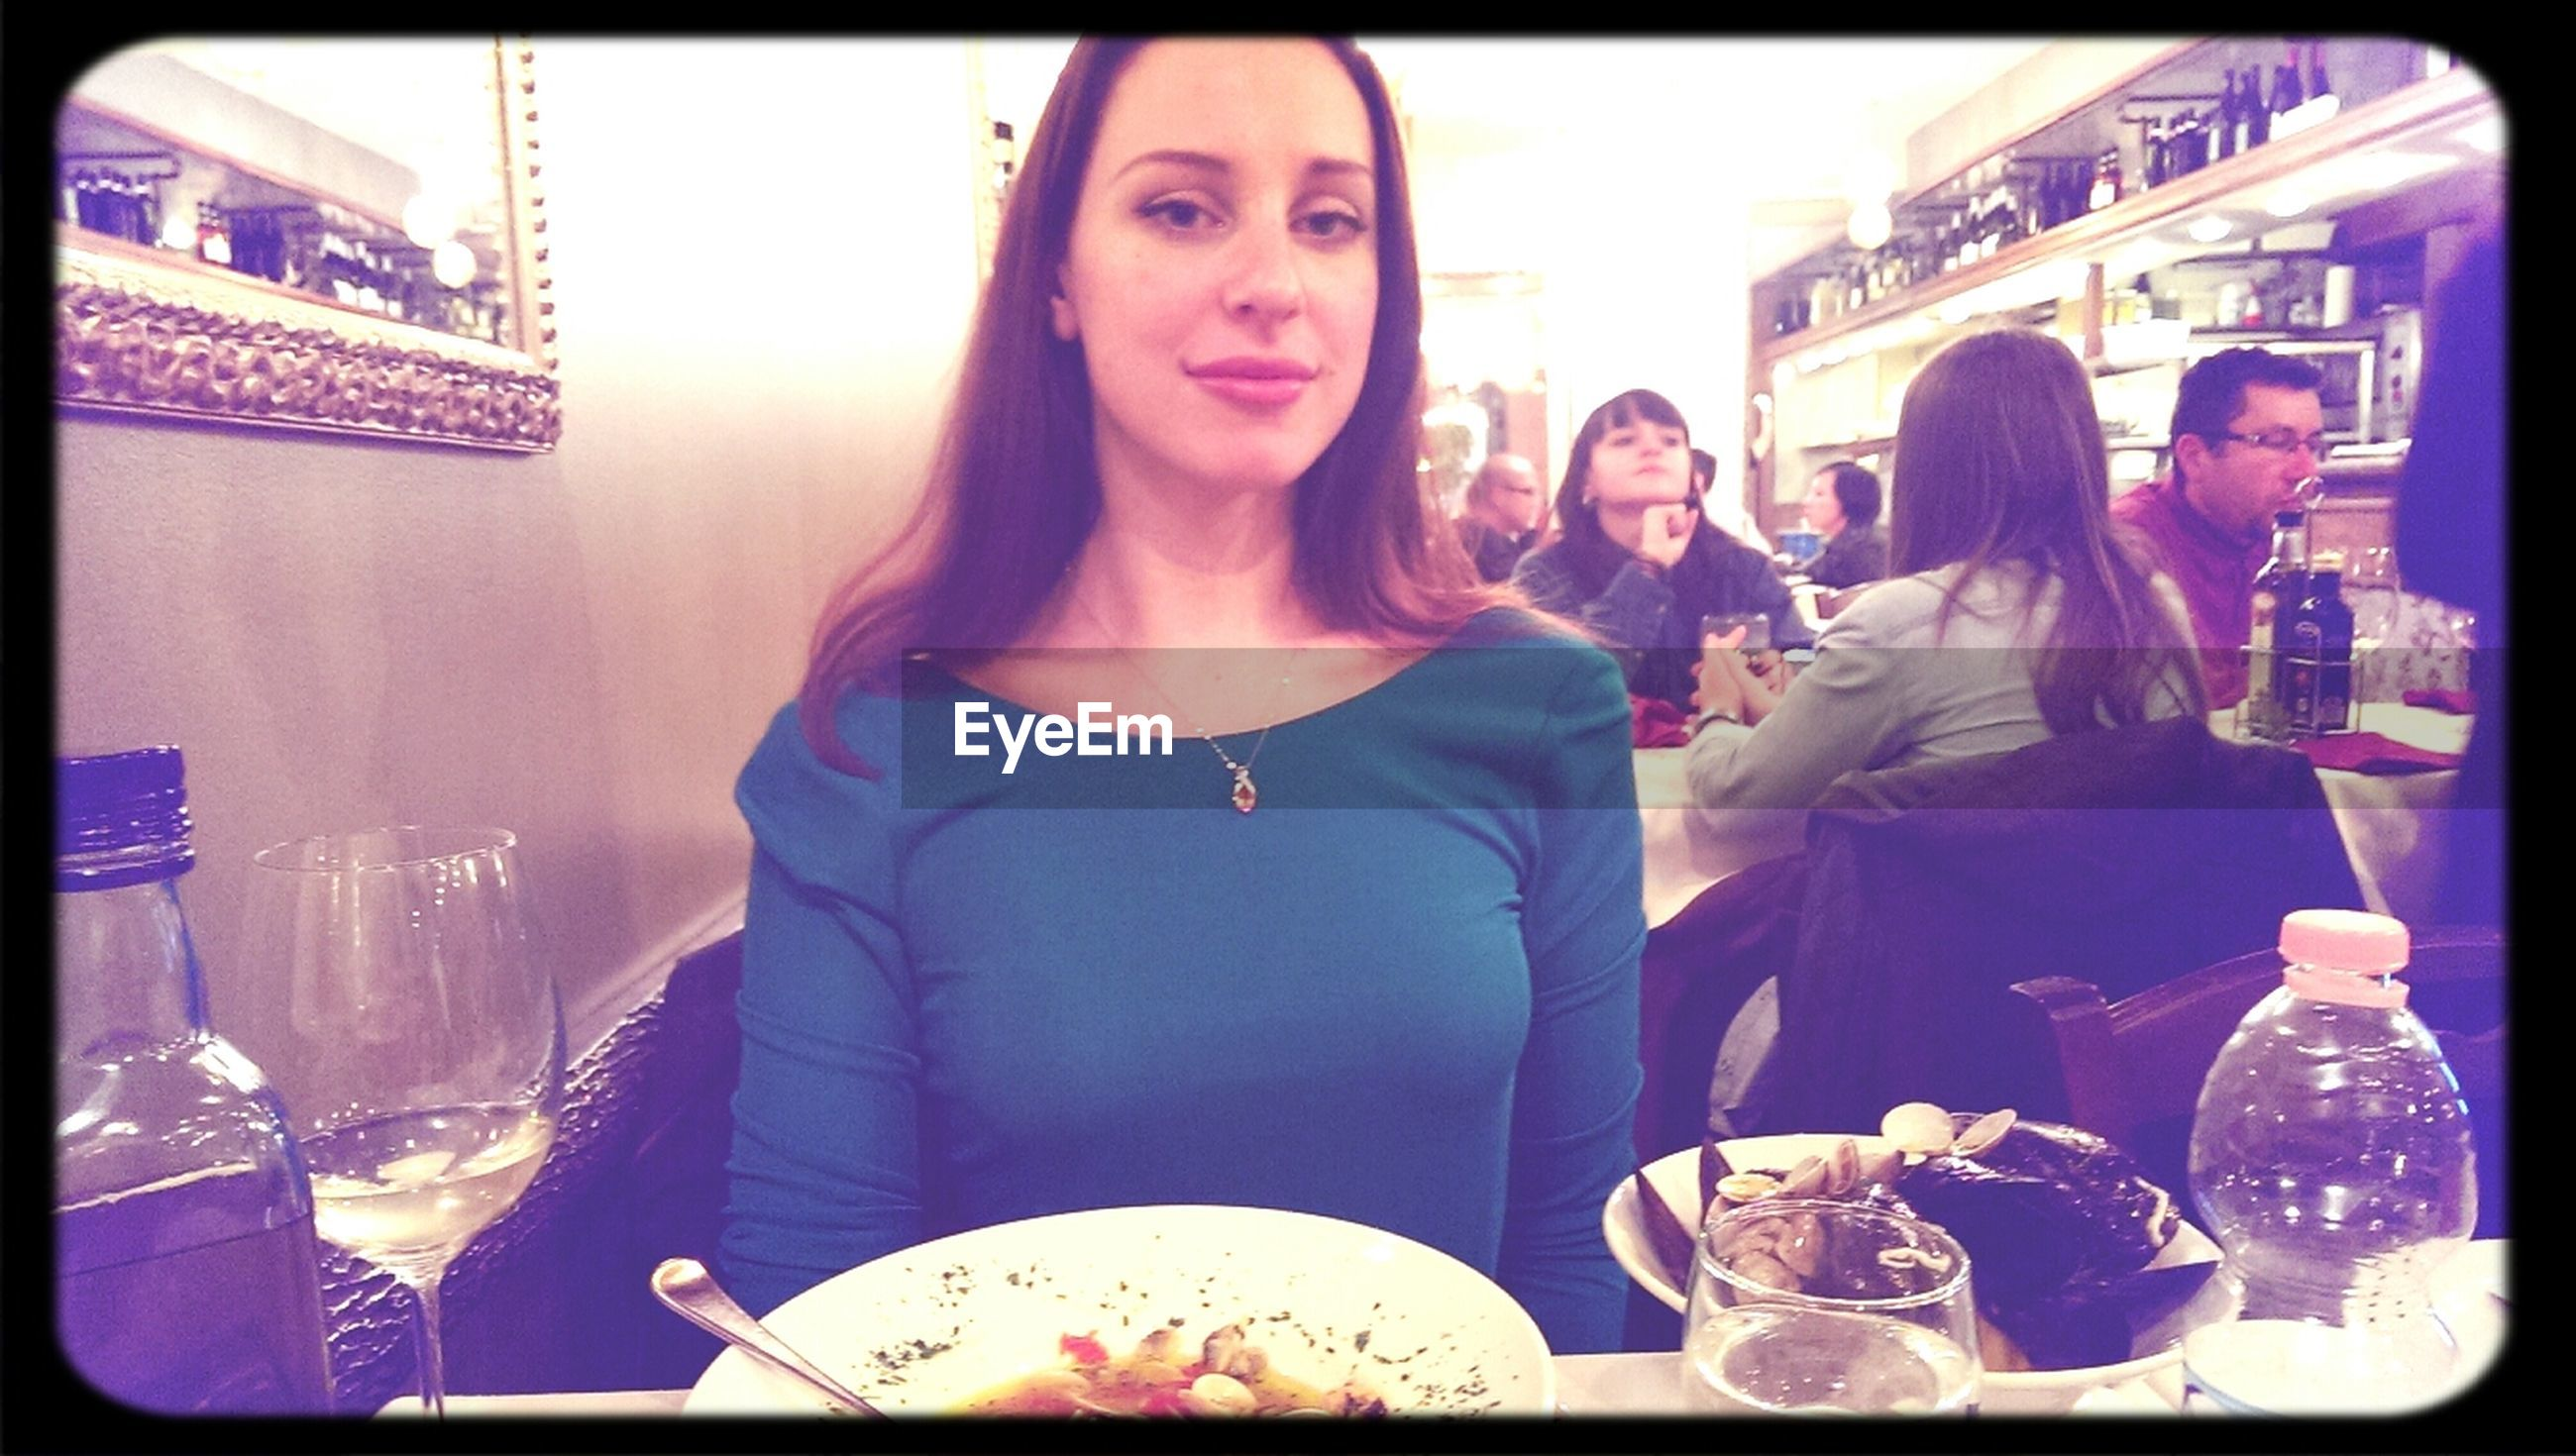 indoors, transfer print, lifestyles, casual clothing, leisure activity, food and drink, person, young adult, auto post production filter, restaurant, front view, drink, young men, portrait, waist up, sitting, looking at camera, holding